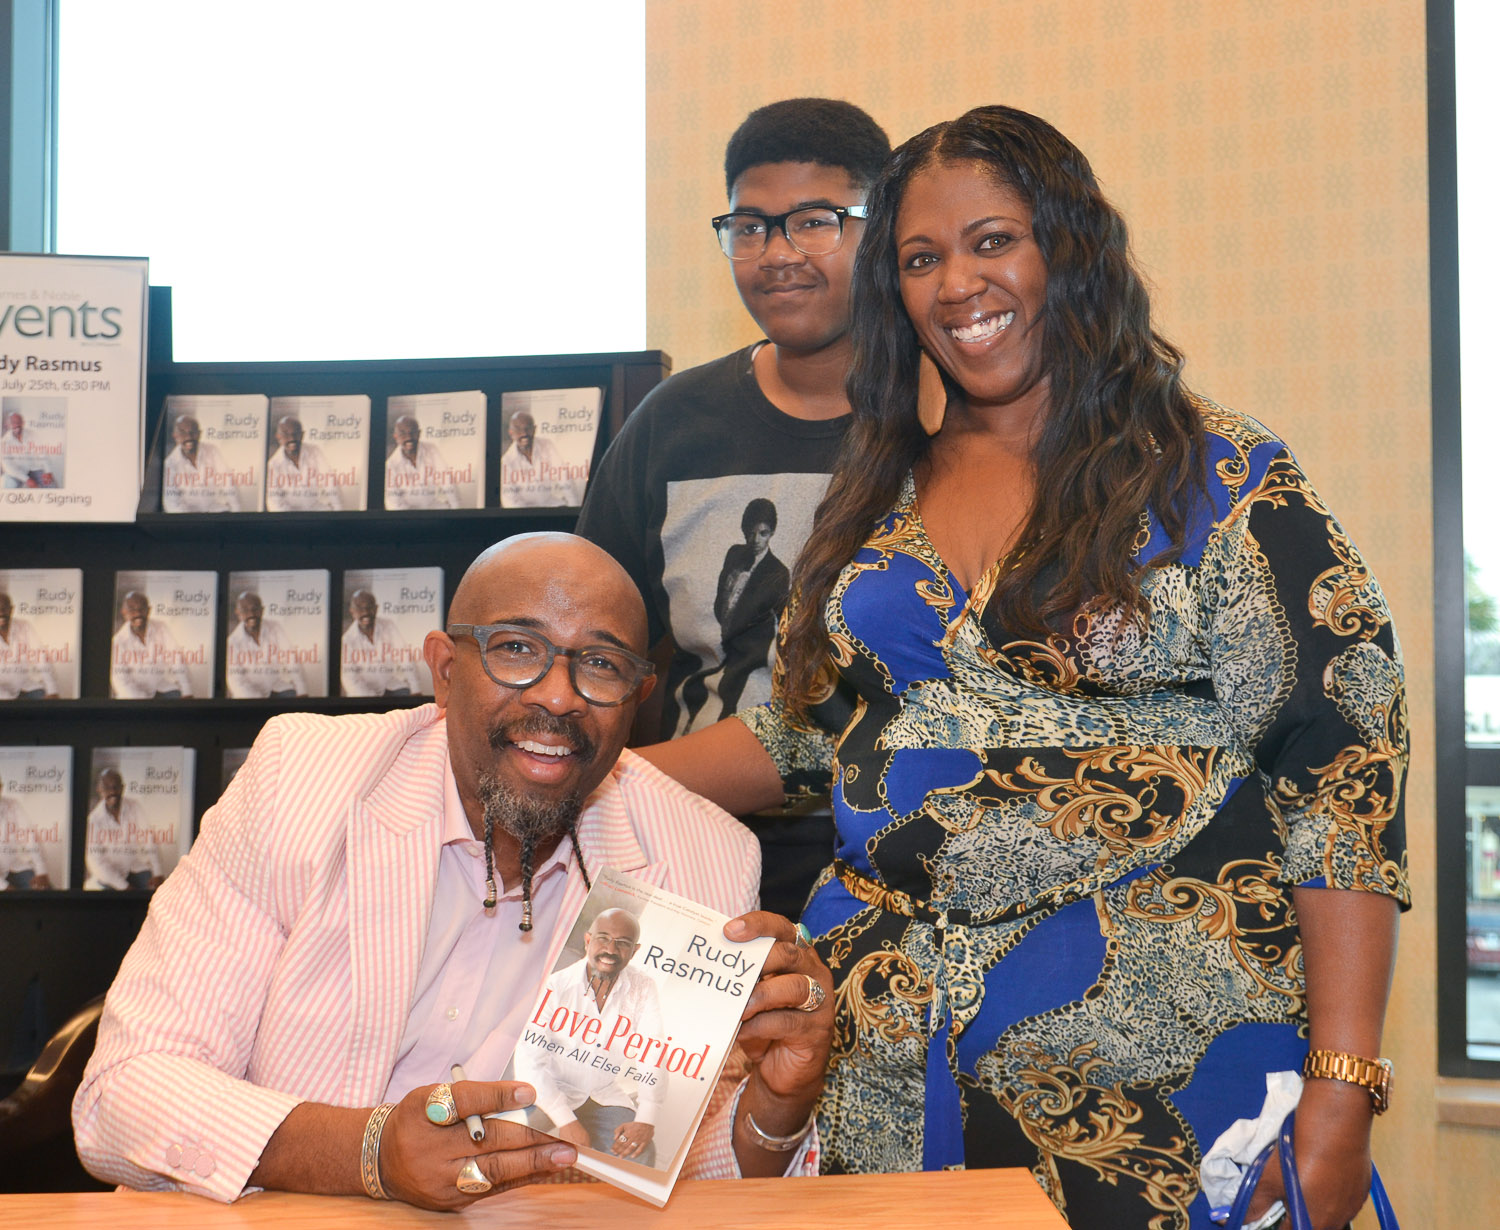 Paster Rudy book signing -0261.jpg